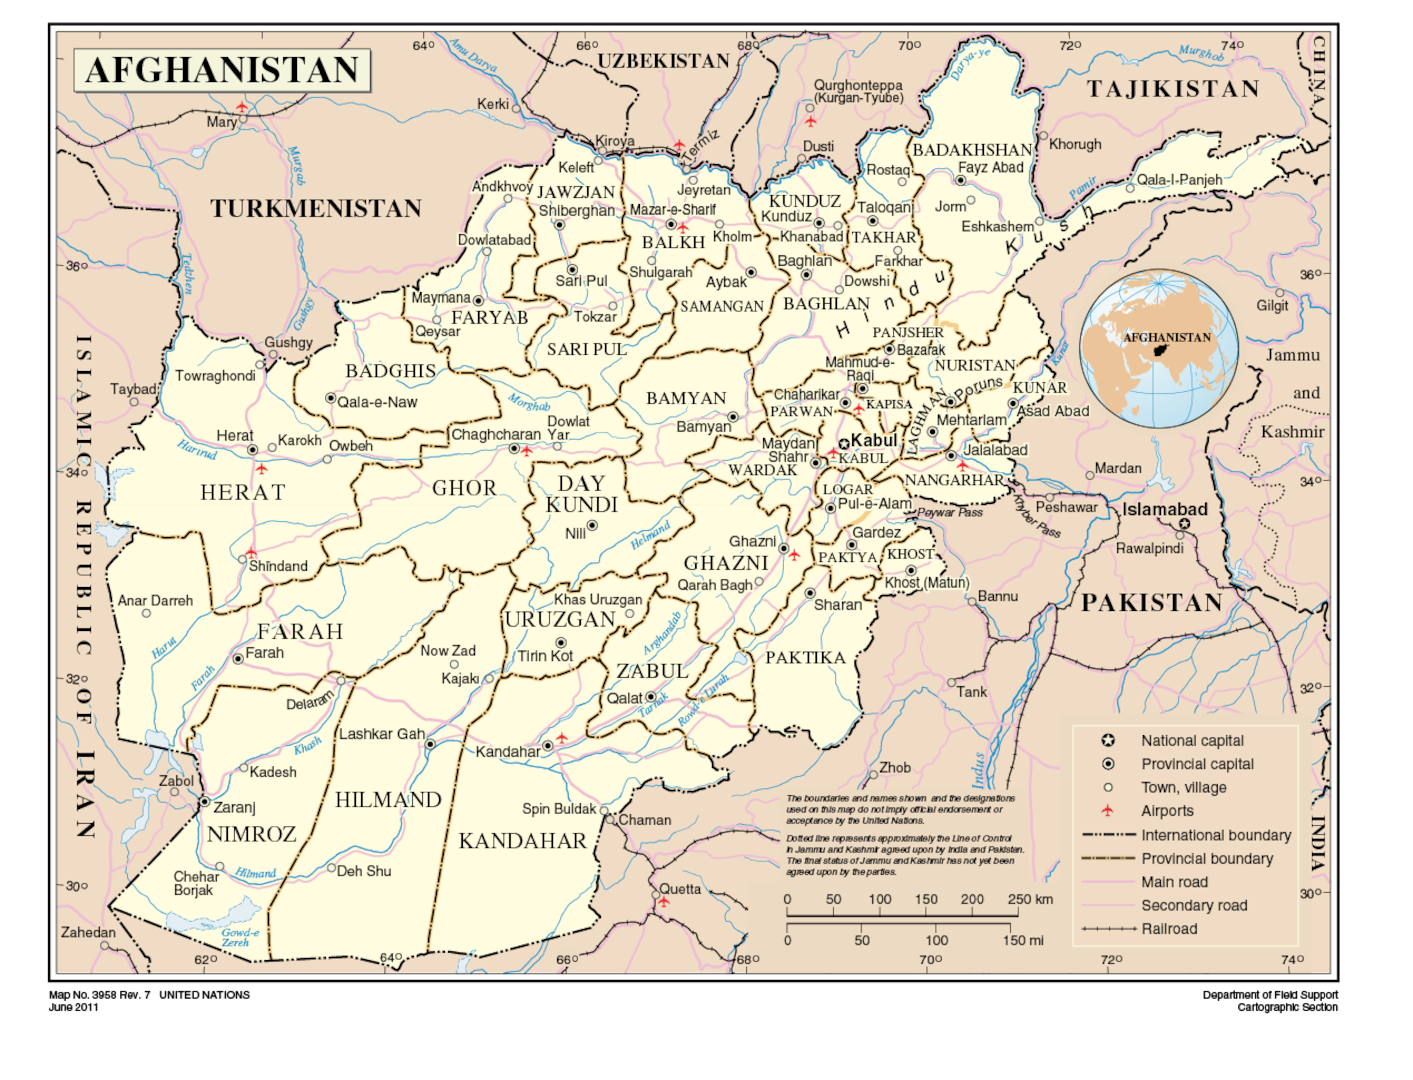 Afghanistan Map No. 3958 United Nations